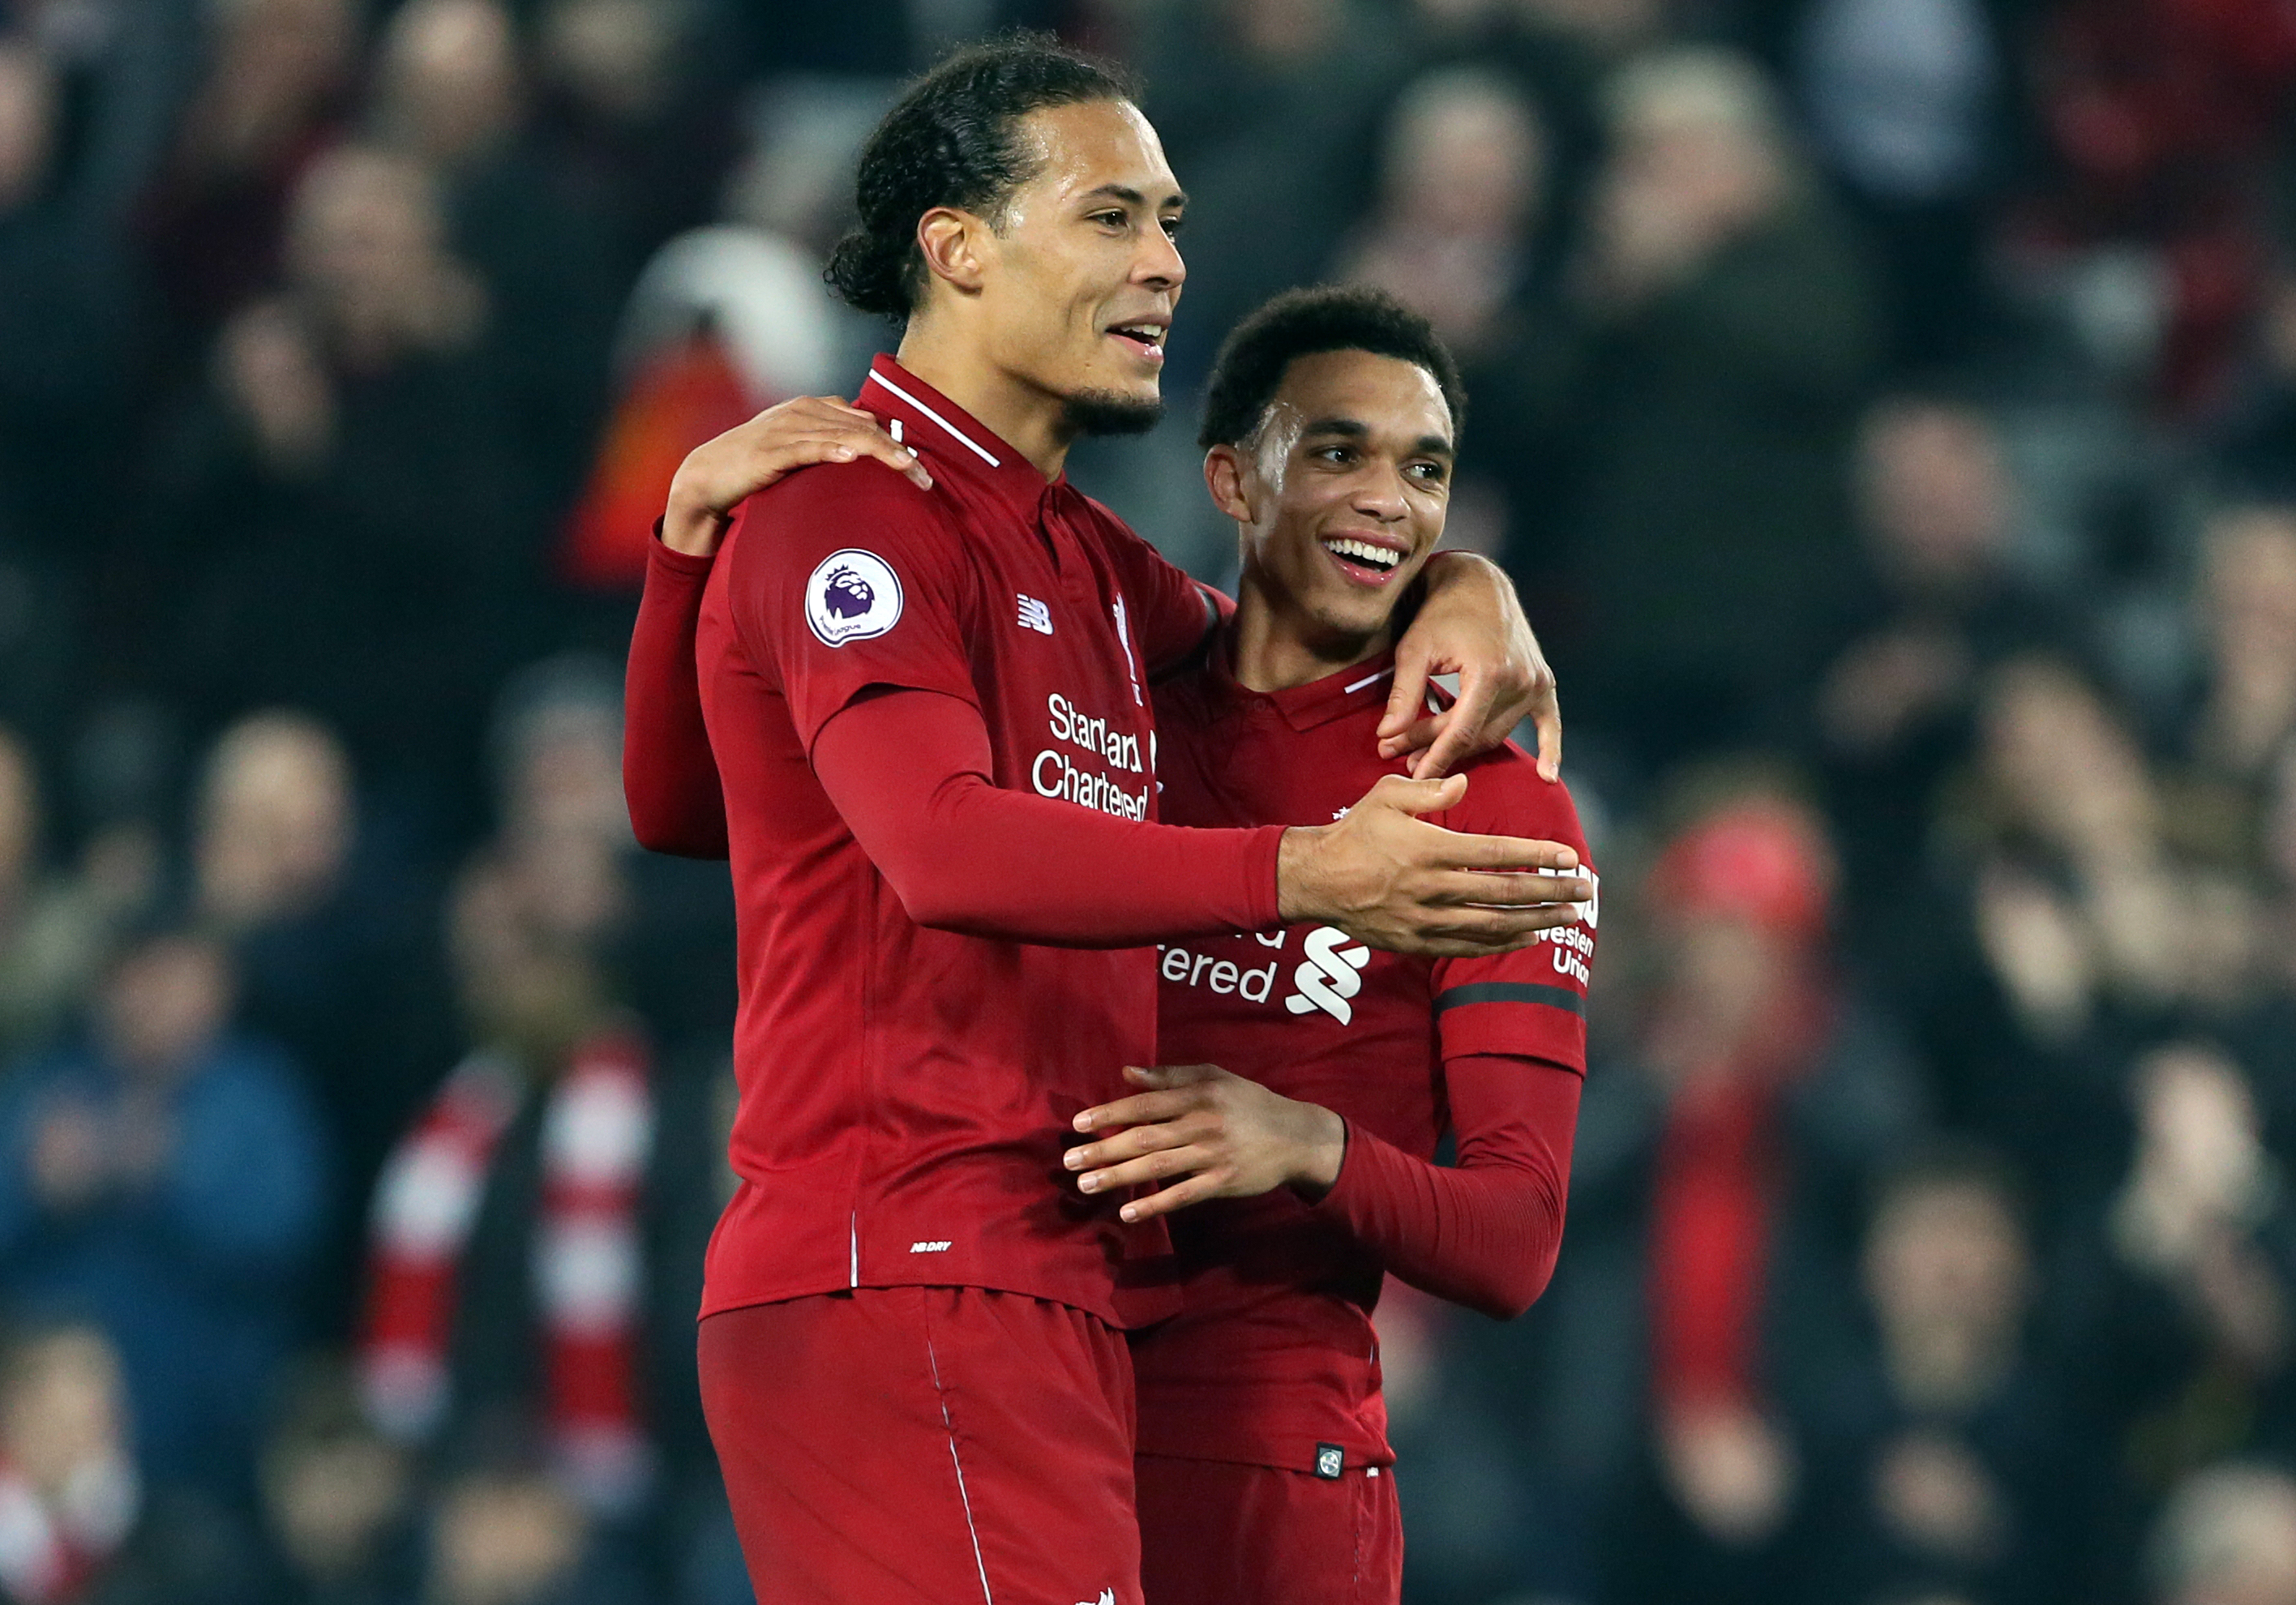 Van Dijk's move has been a relative steal for Liverpool. Image: PA Images